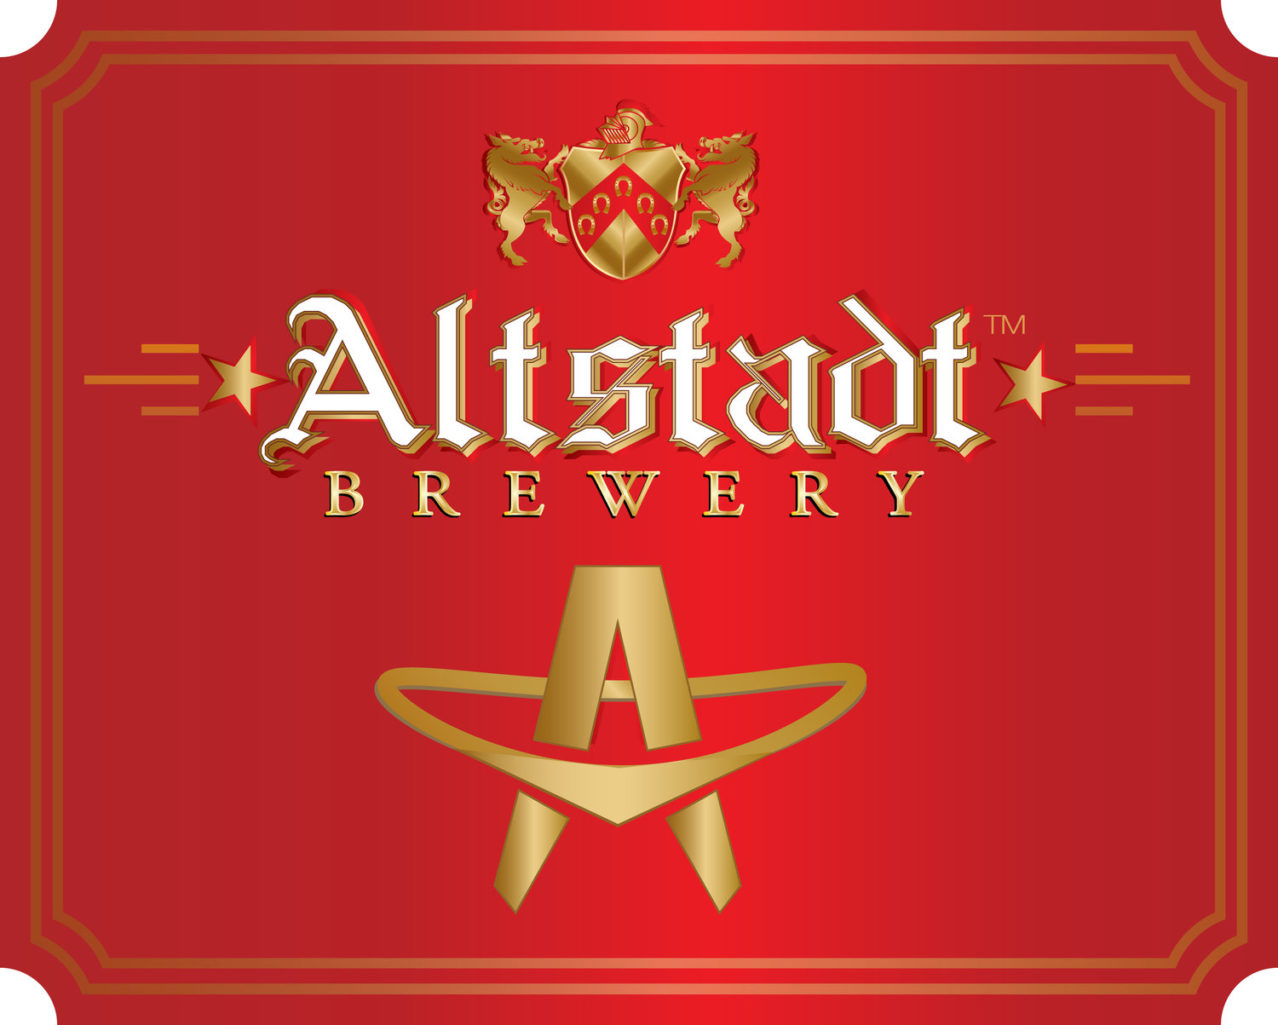 Altstadt Brewery - Austin Wedding Rehearsal Dinner